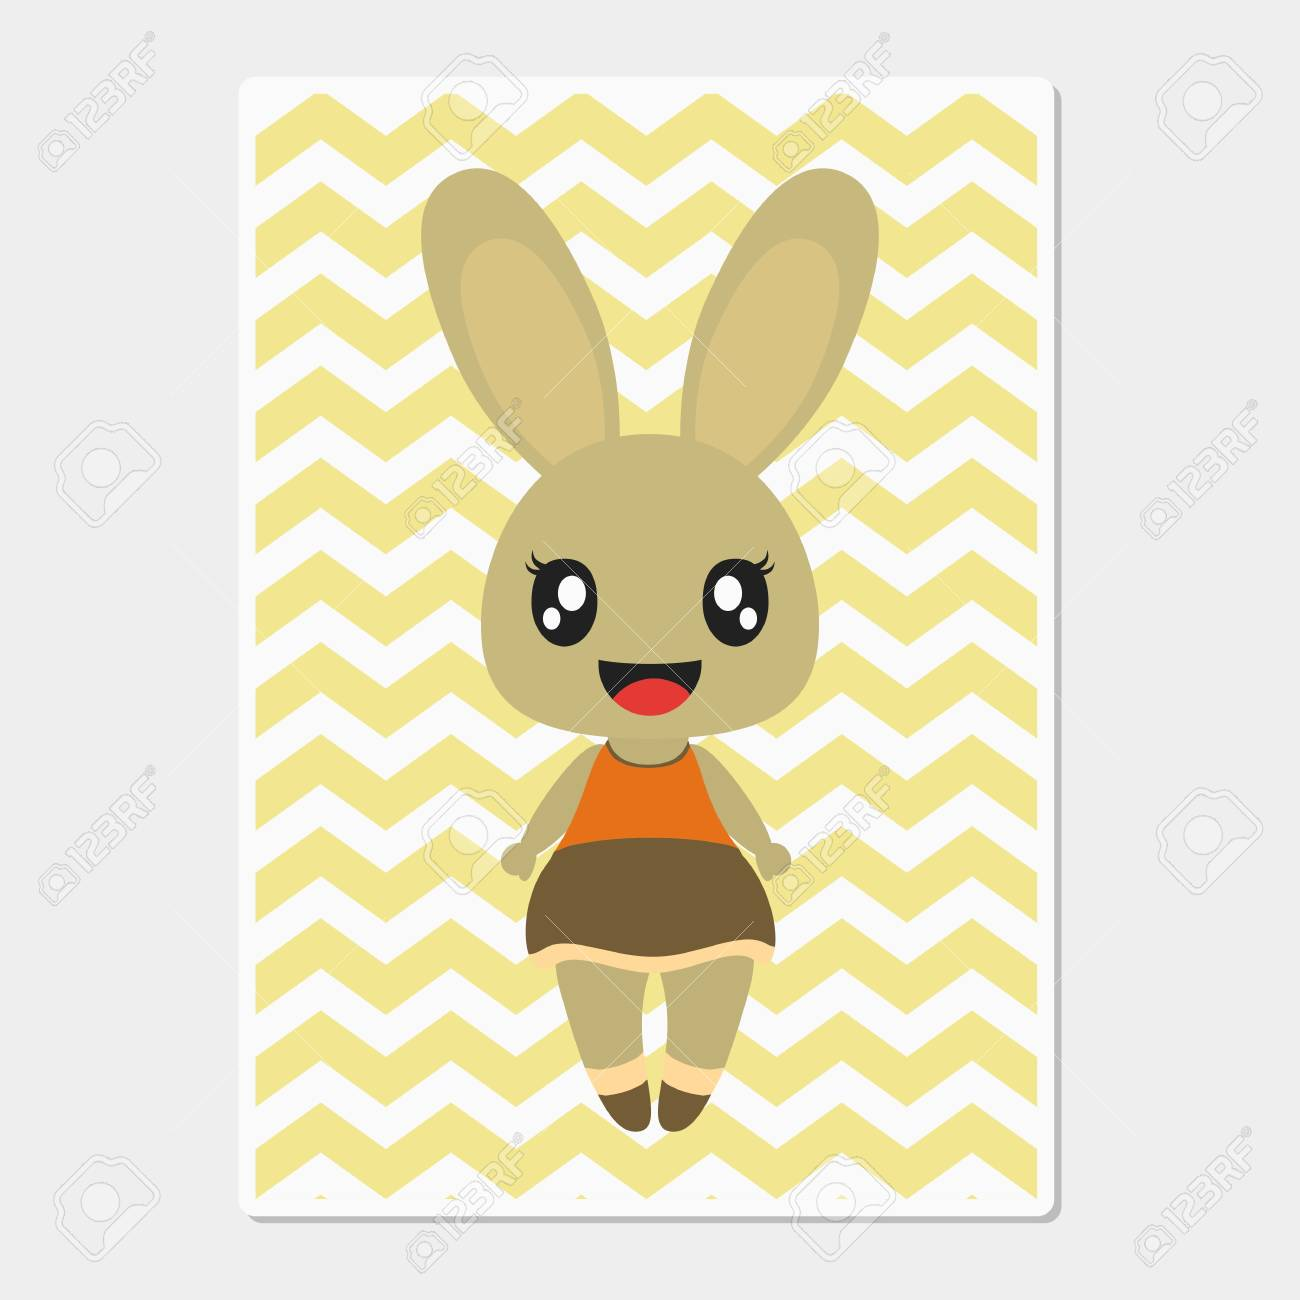 Cute Bunny Girl Smiles On Chevron Background Vector Cartoon Illustration For Baby Nursery Wall Wallpaper And Postcard